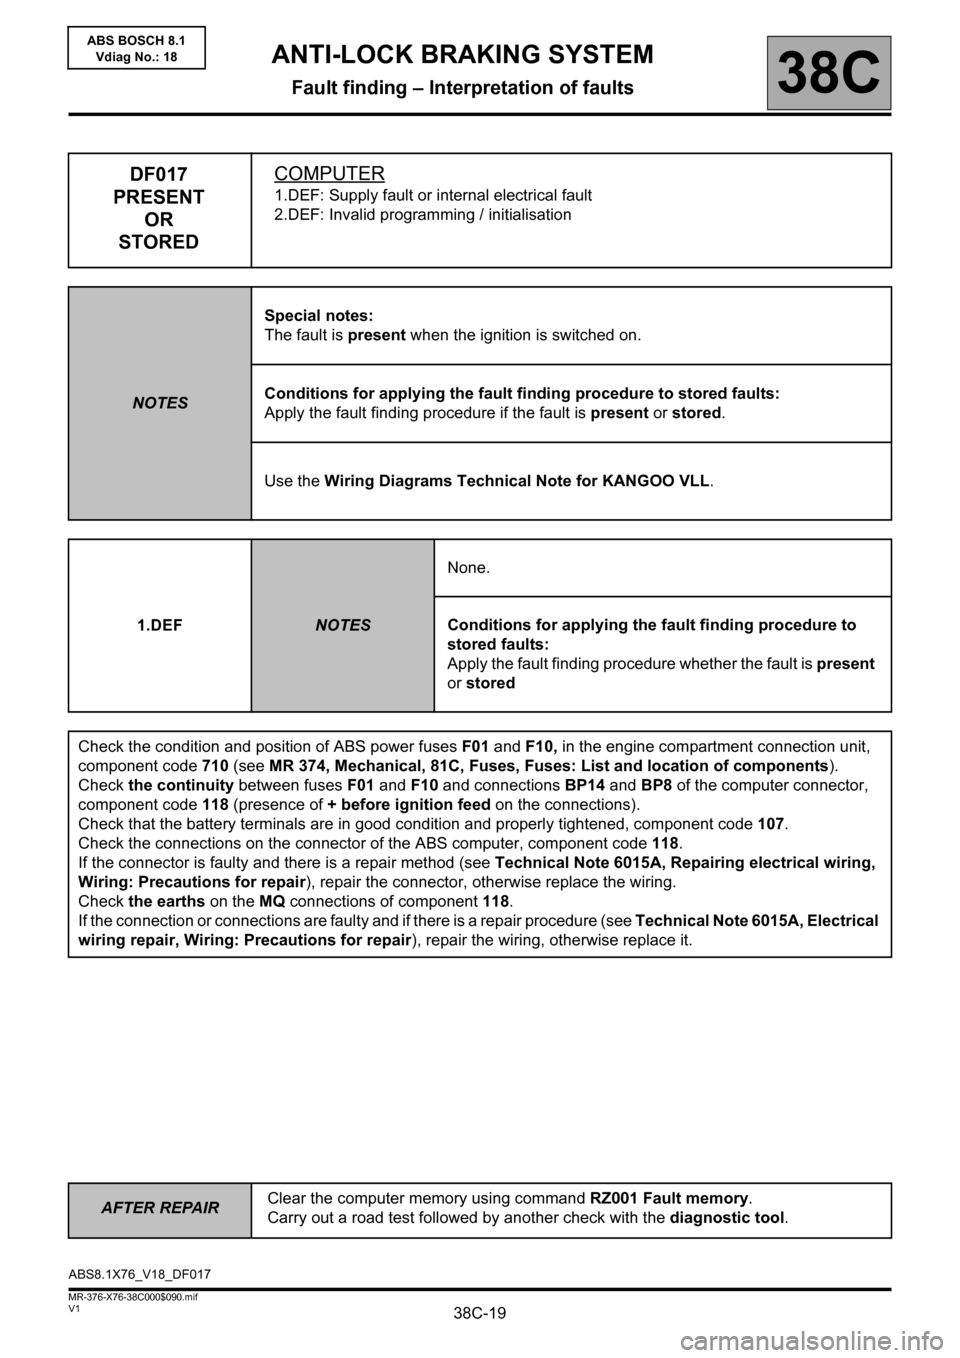 RENAULT KANGOO 2013 X61 / 2.G ABS Bosch 8.1 Workshop Manual, Page 19